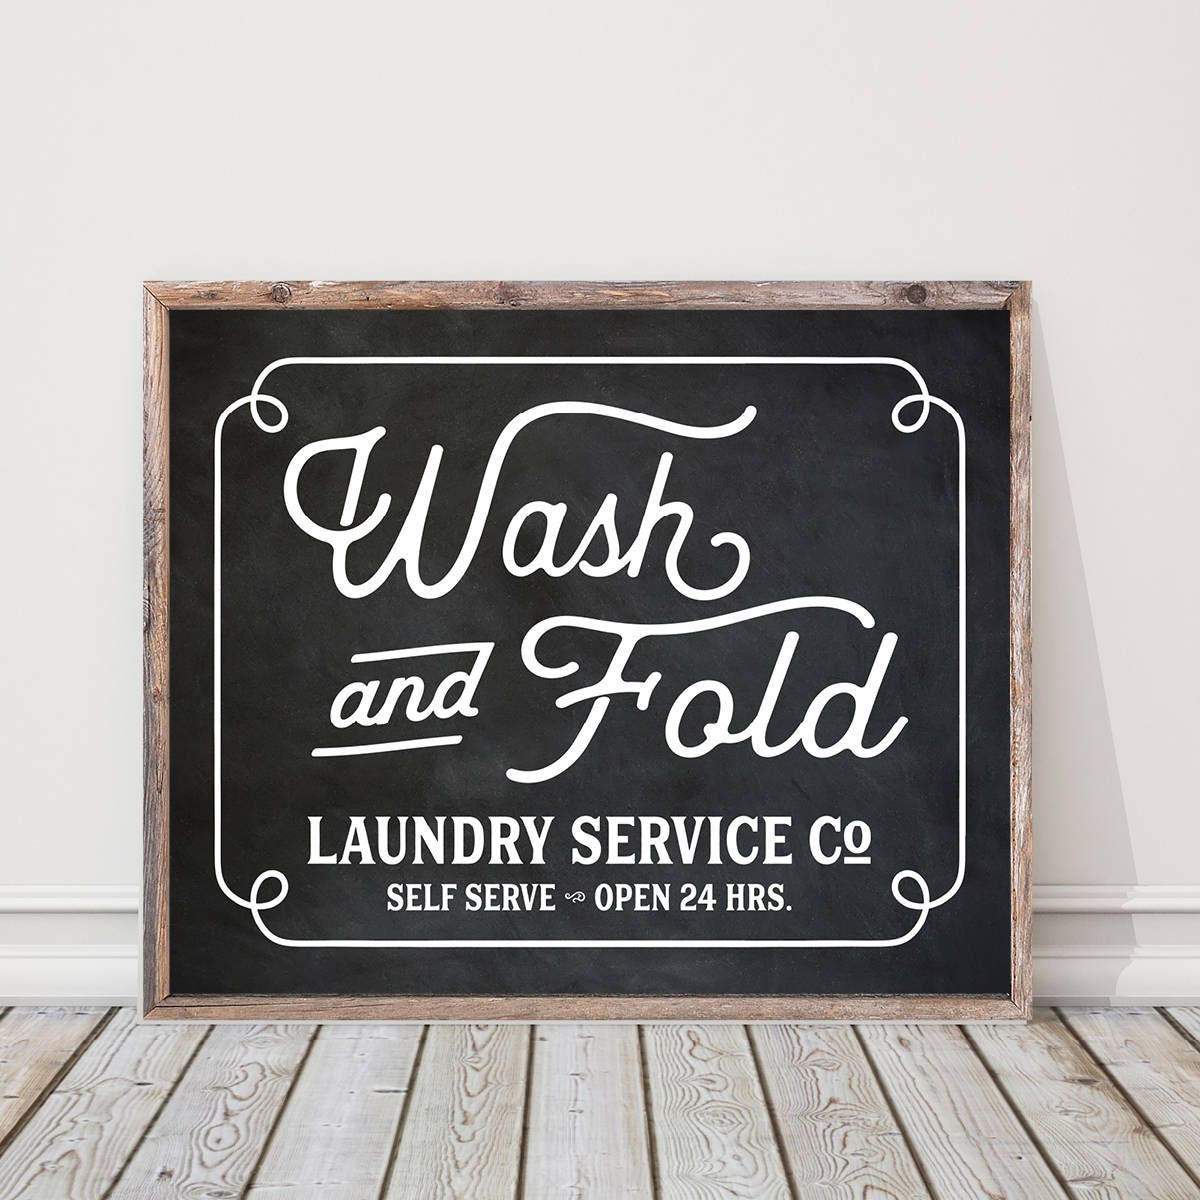 Wooden Laundry Sign Mesmerizing Laundry Room Decorlaundry Room Art Printlaundry Signlaundry Design Ideas